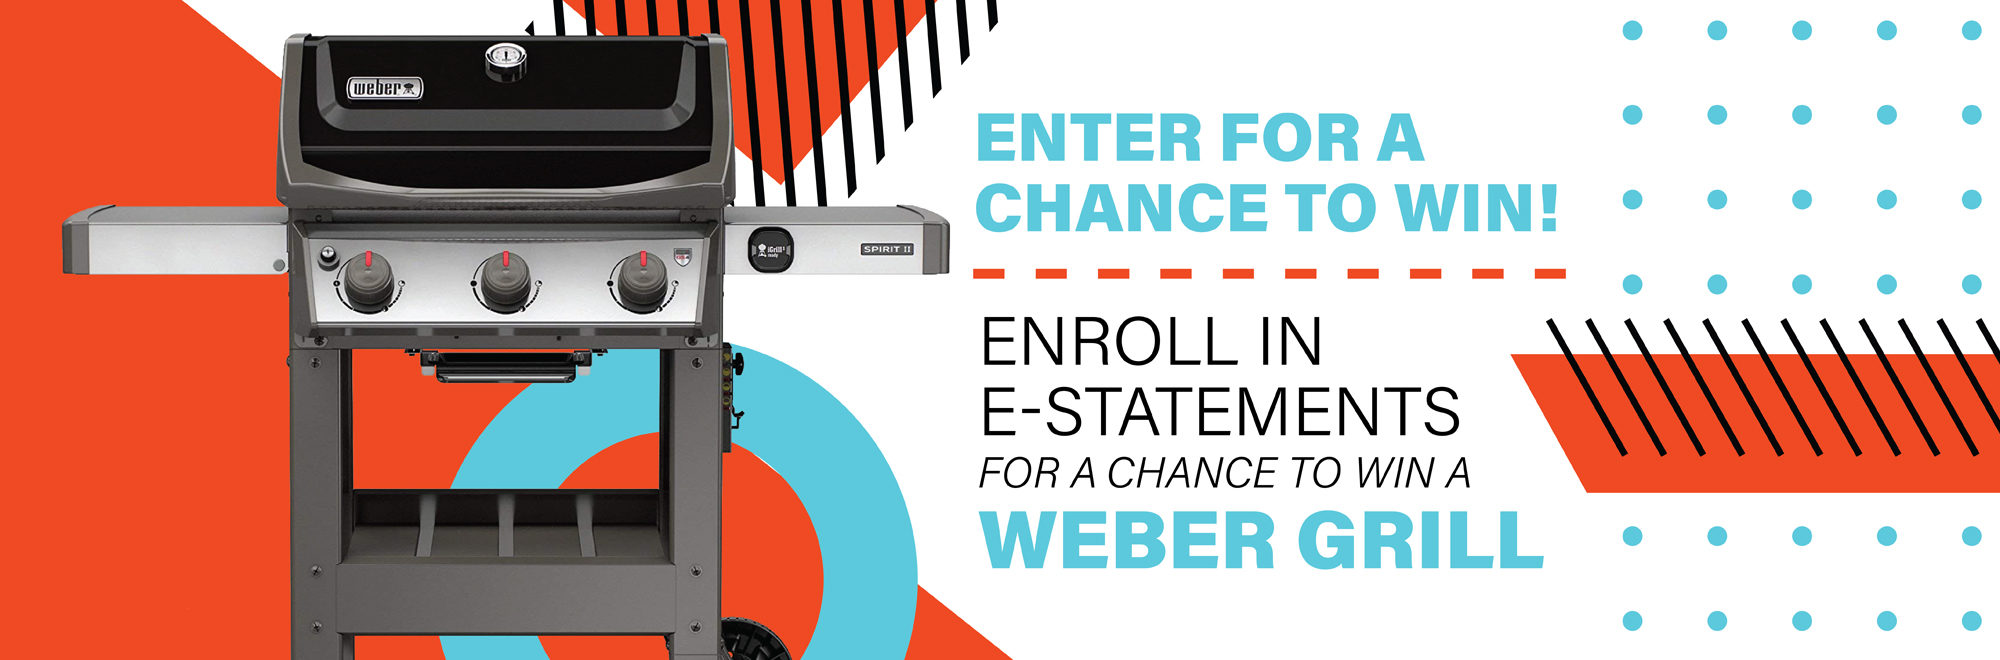 Enroll in e-statements for a chance to win a Weber grill